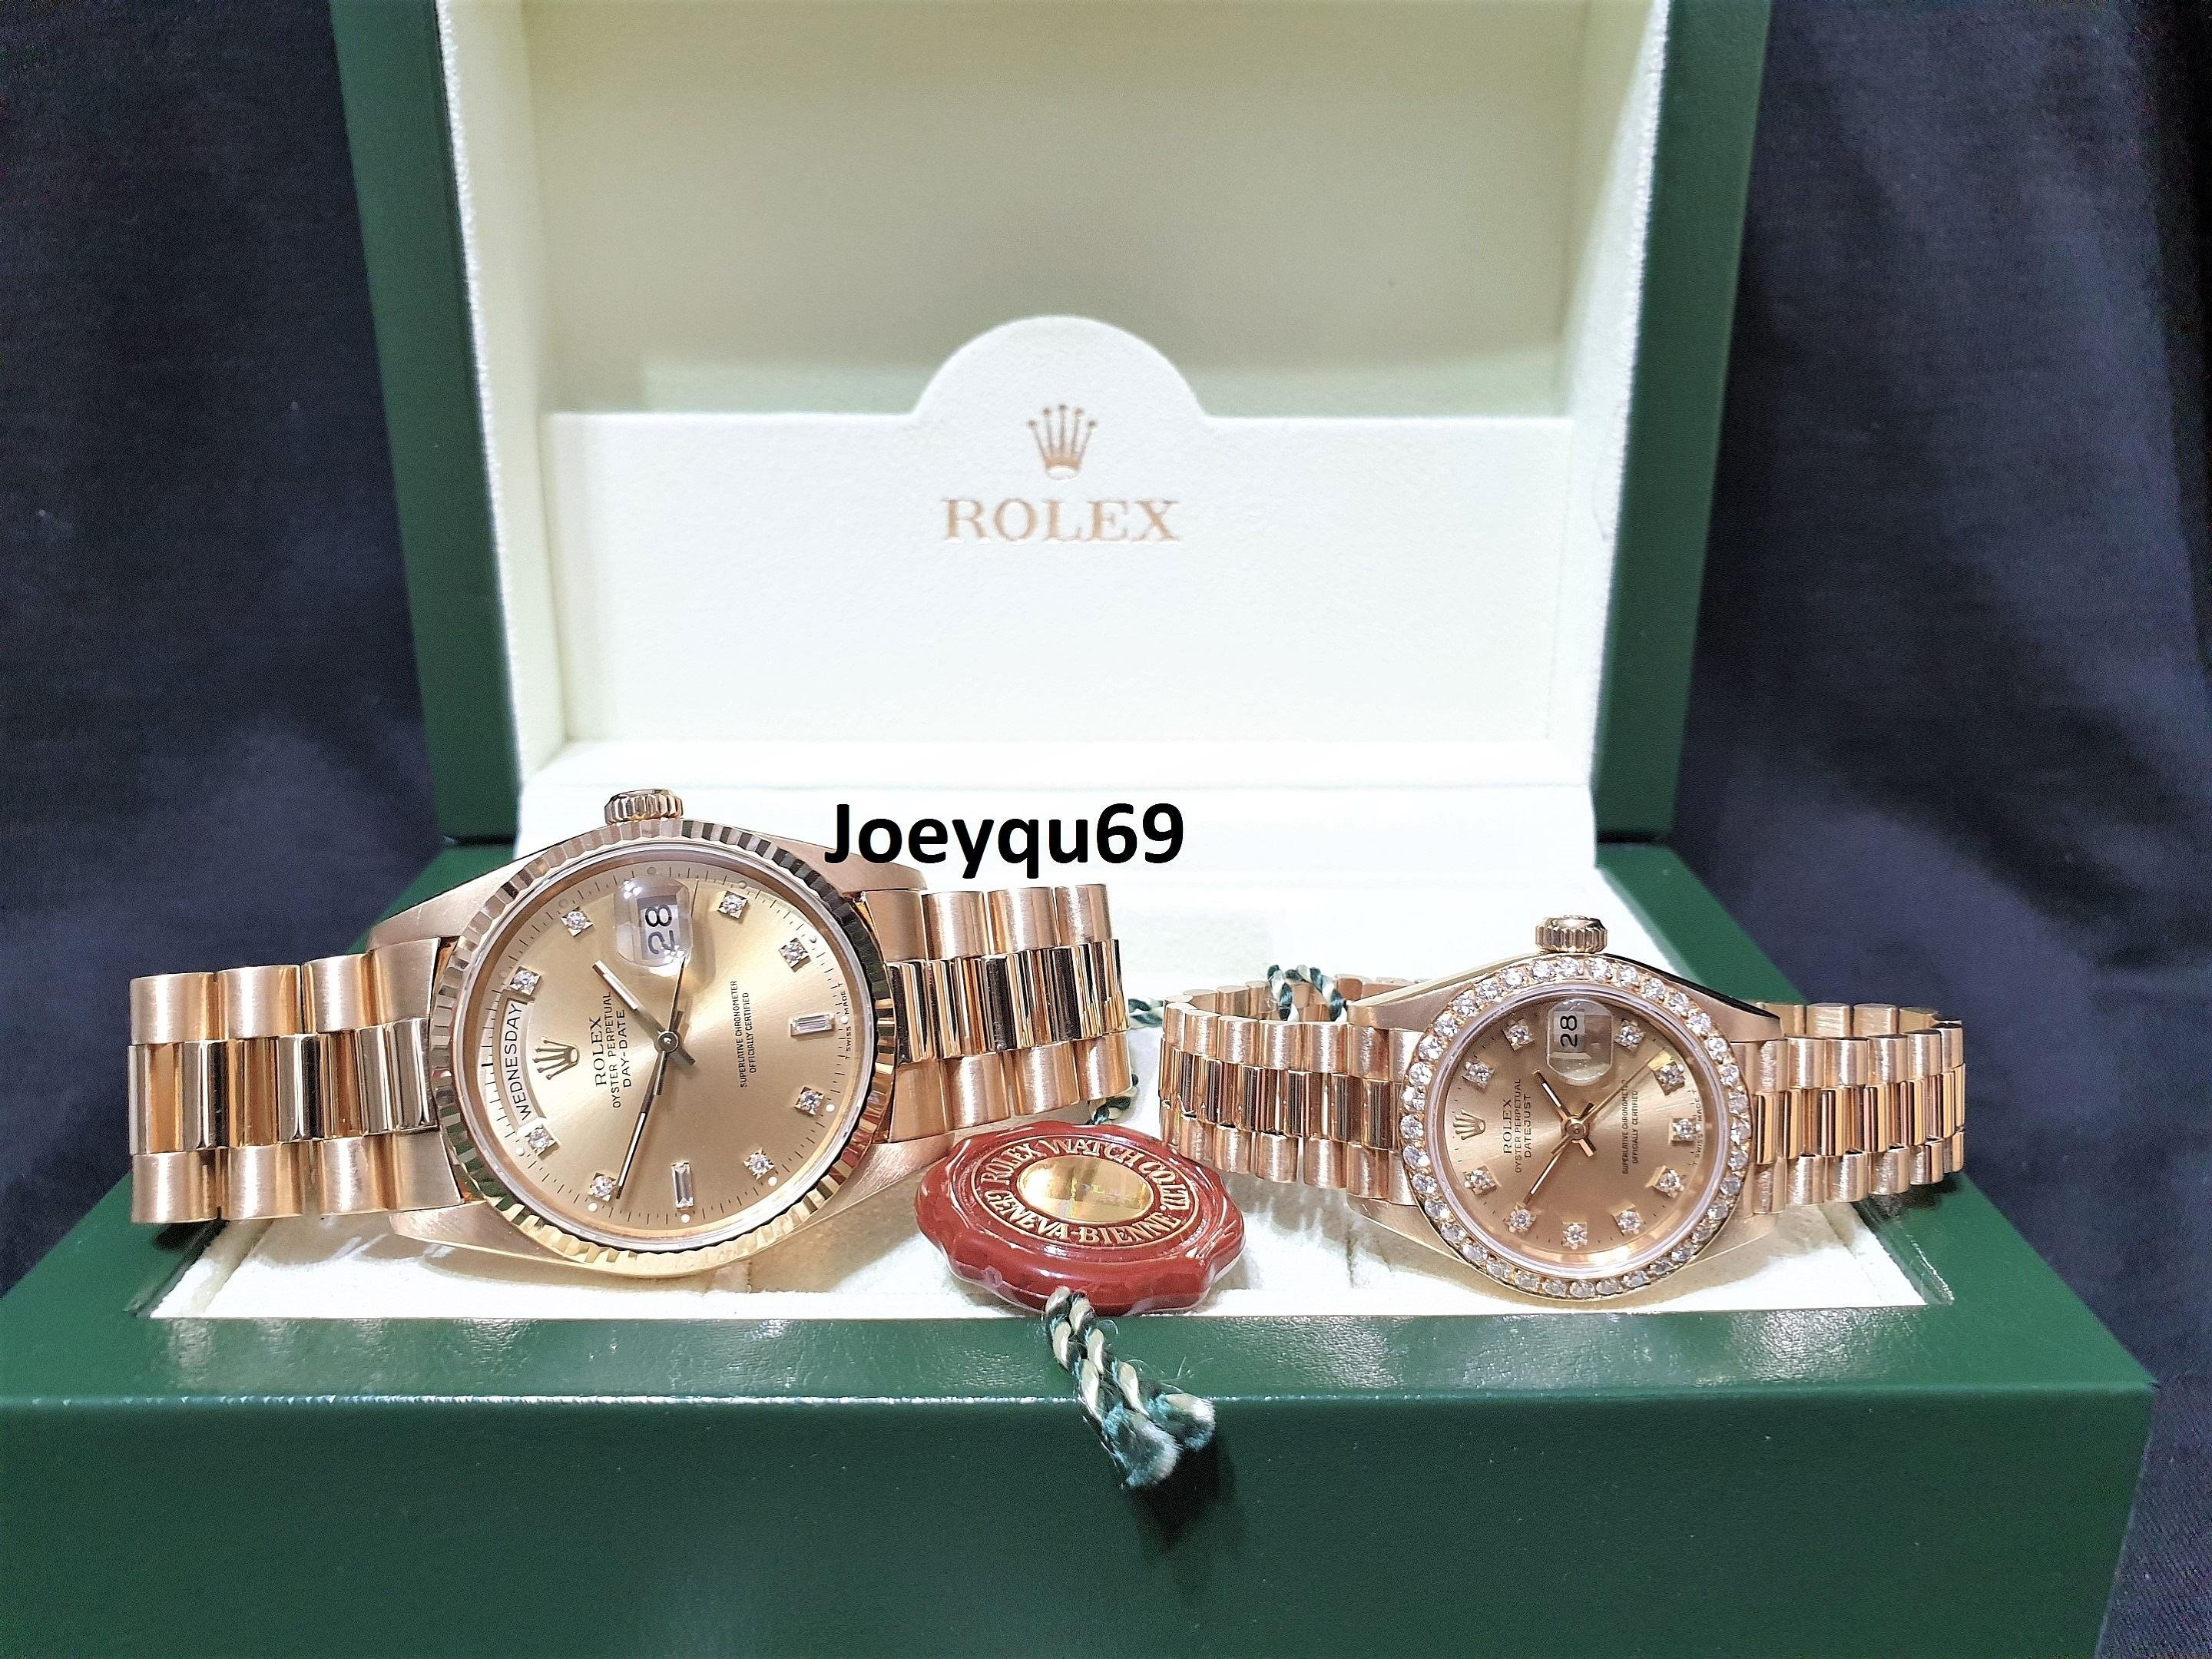 Rolex King Queen Pair Or Individual Sales President